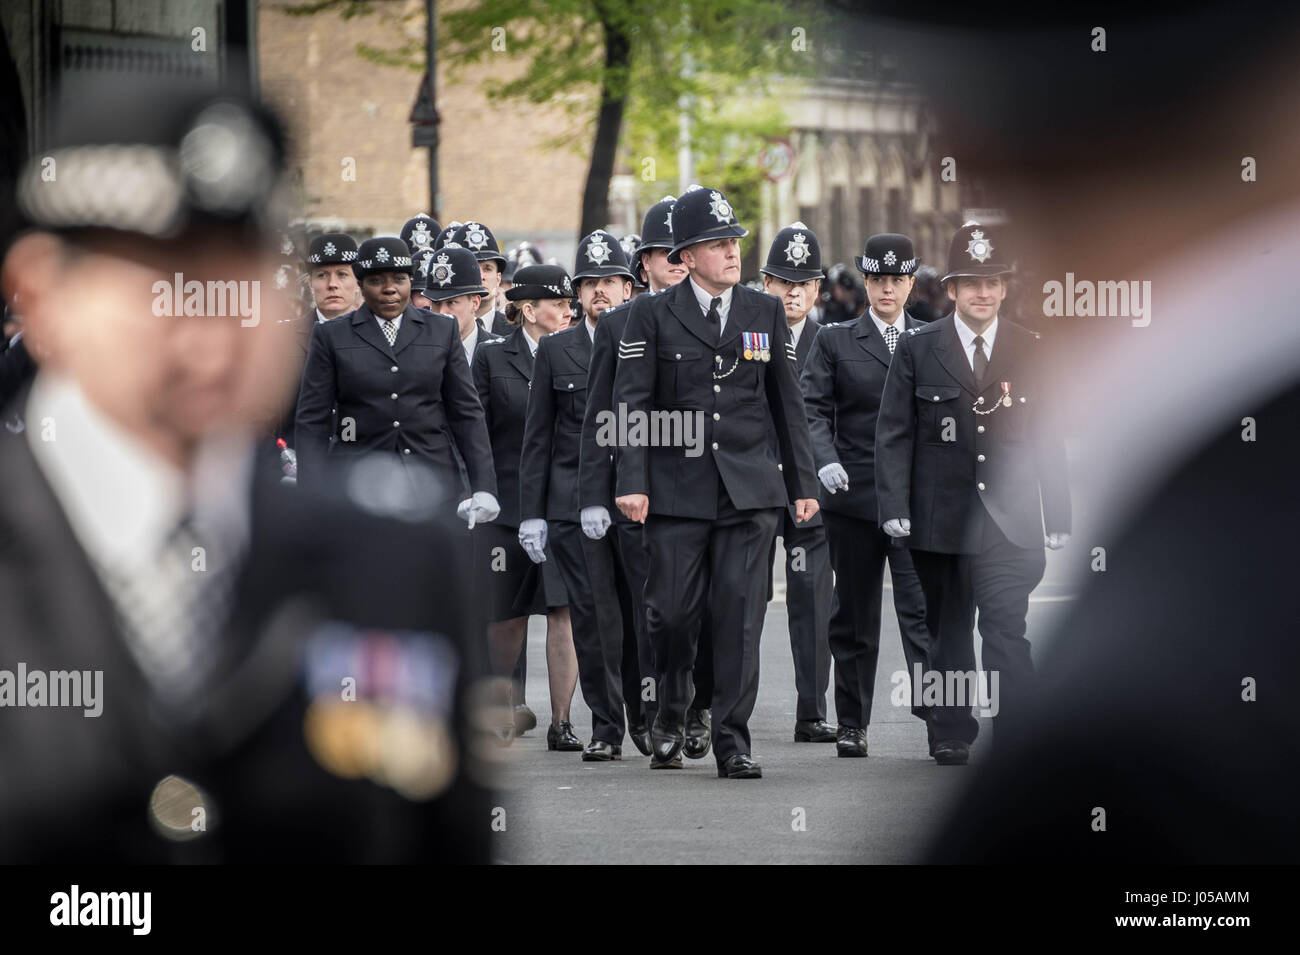 London, UK. 10th Apr, 2017. Funeral day of PC Keith Palmer who was killed in Westminster on 22nd March. Credit: - Stock Image